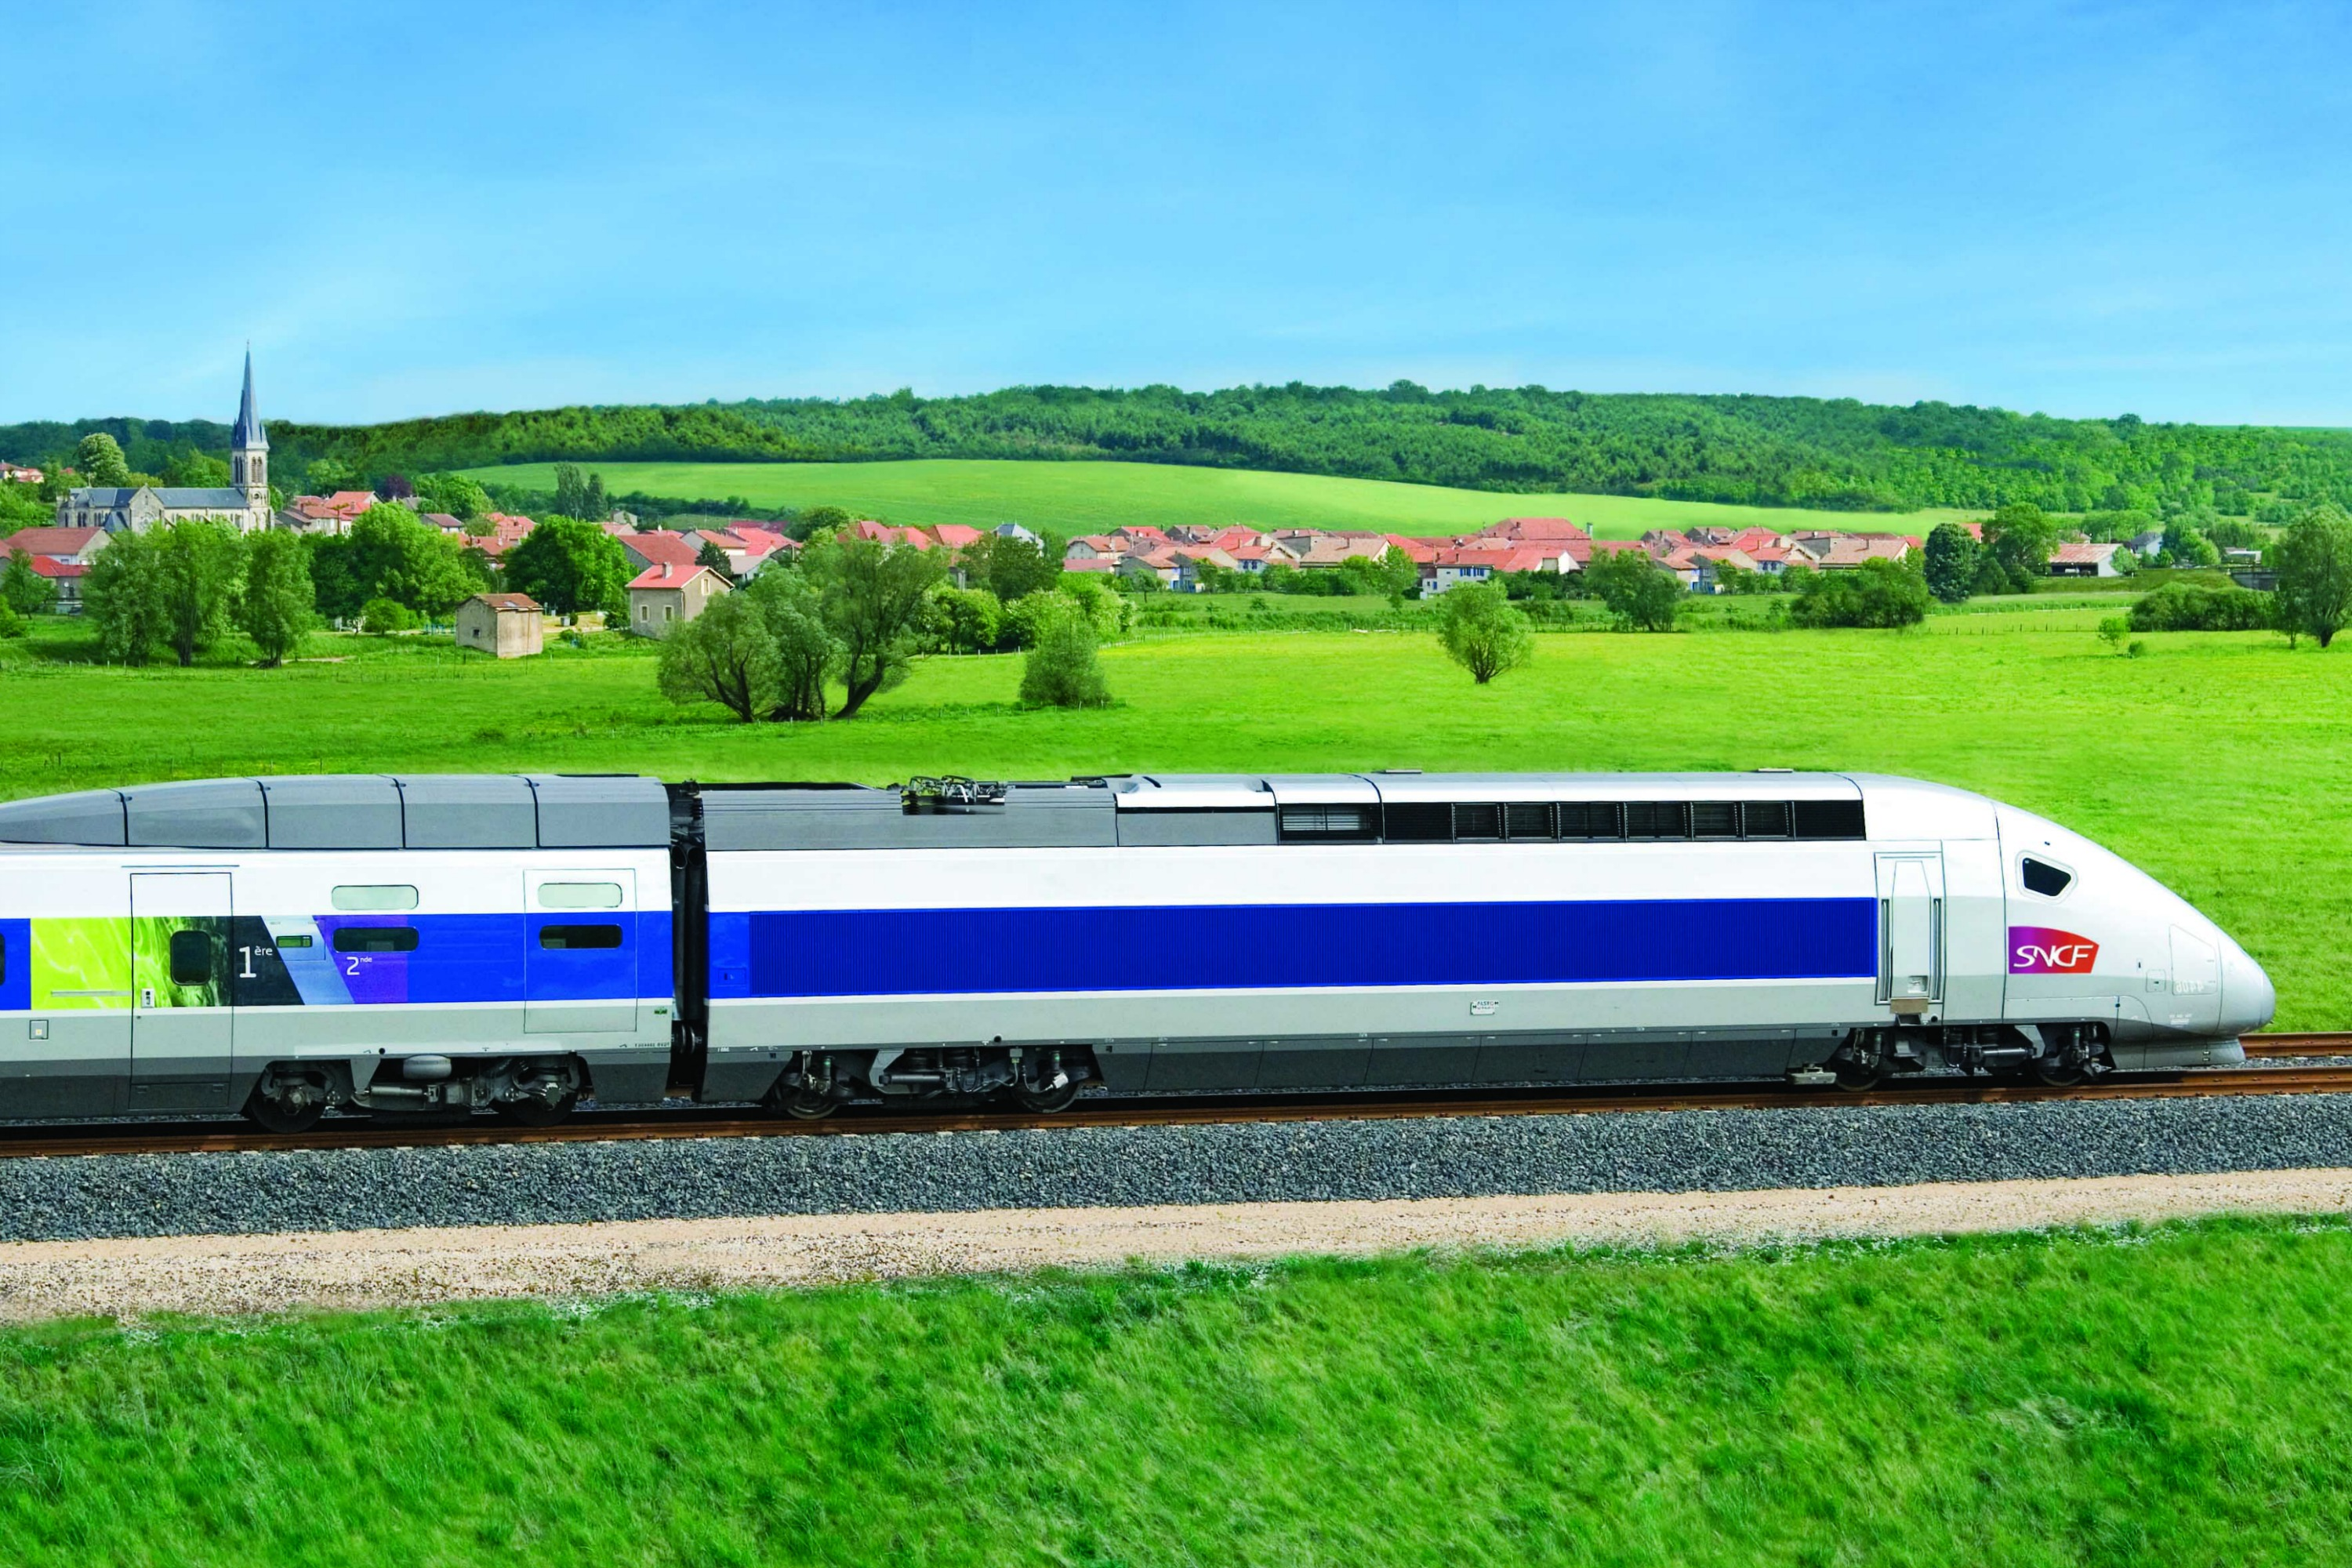 A French-made high-speed train